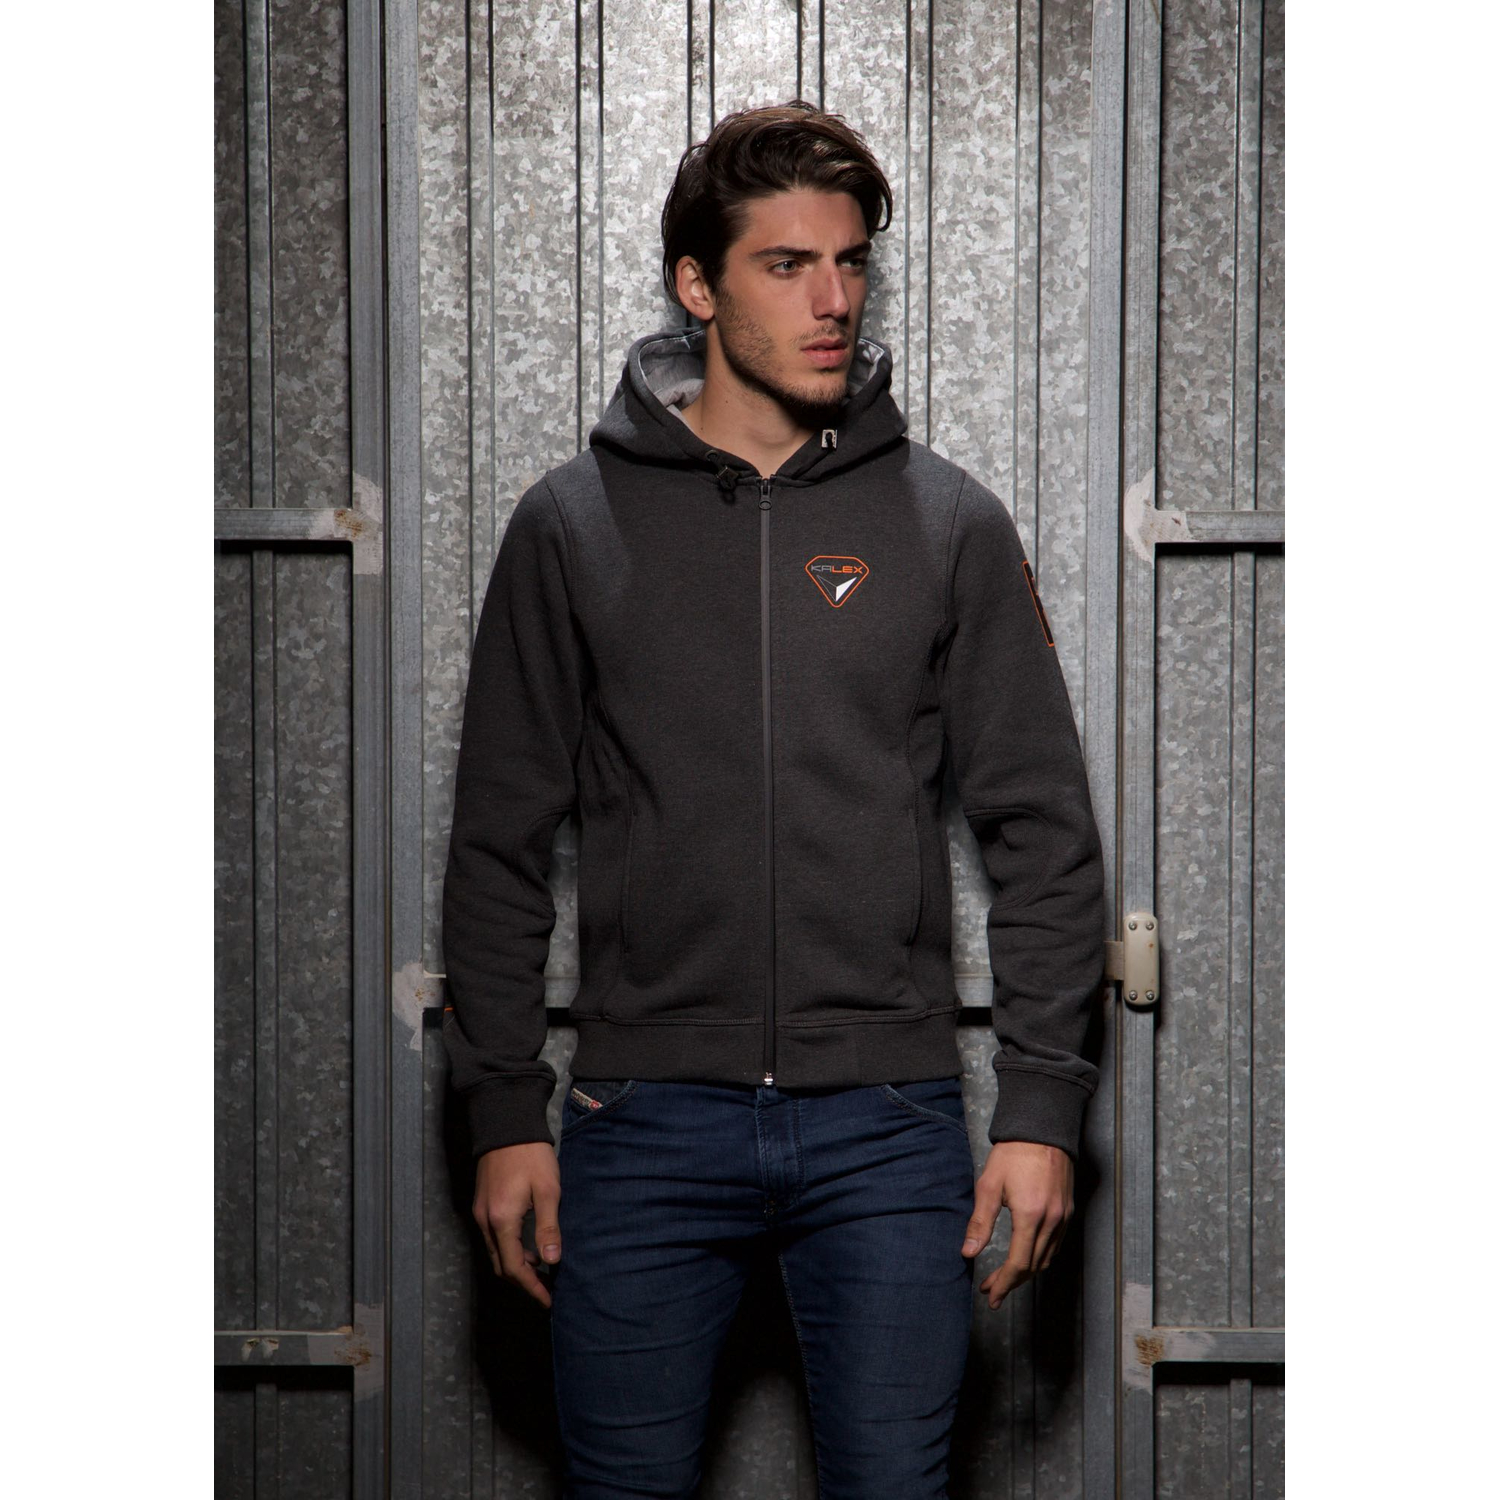 HOODED SWEATJACKET